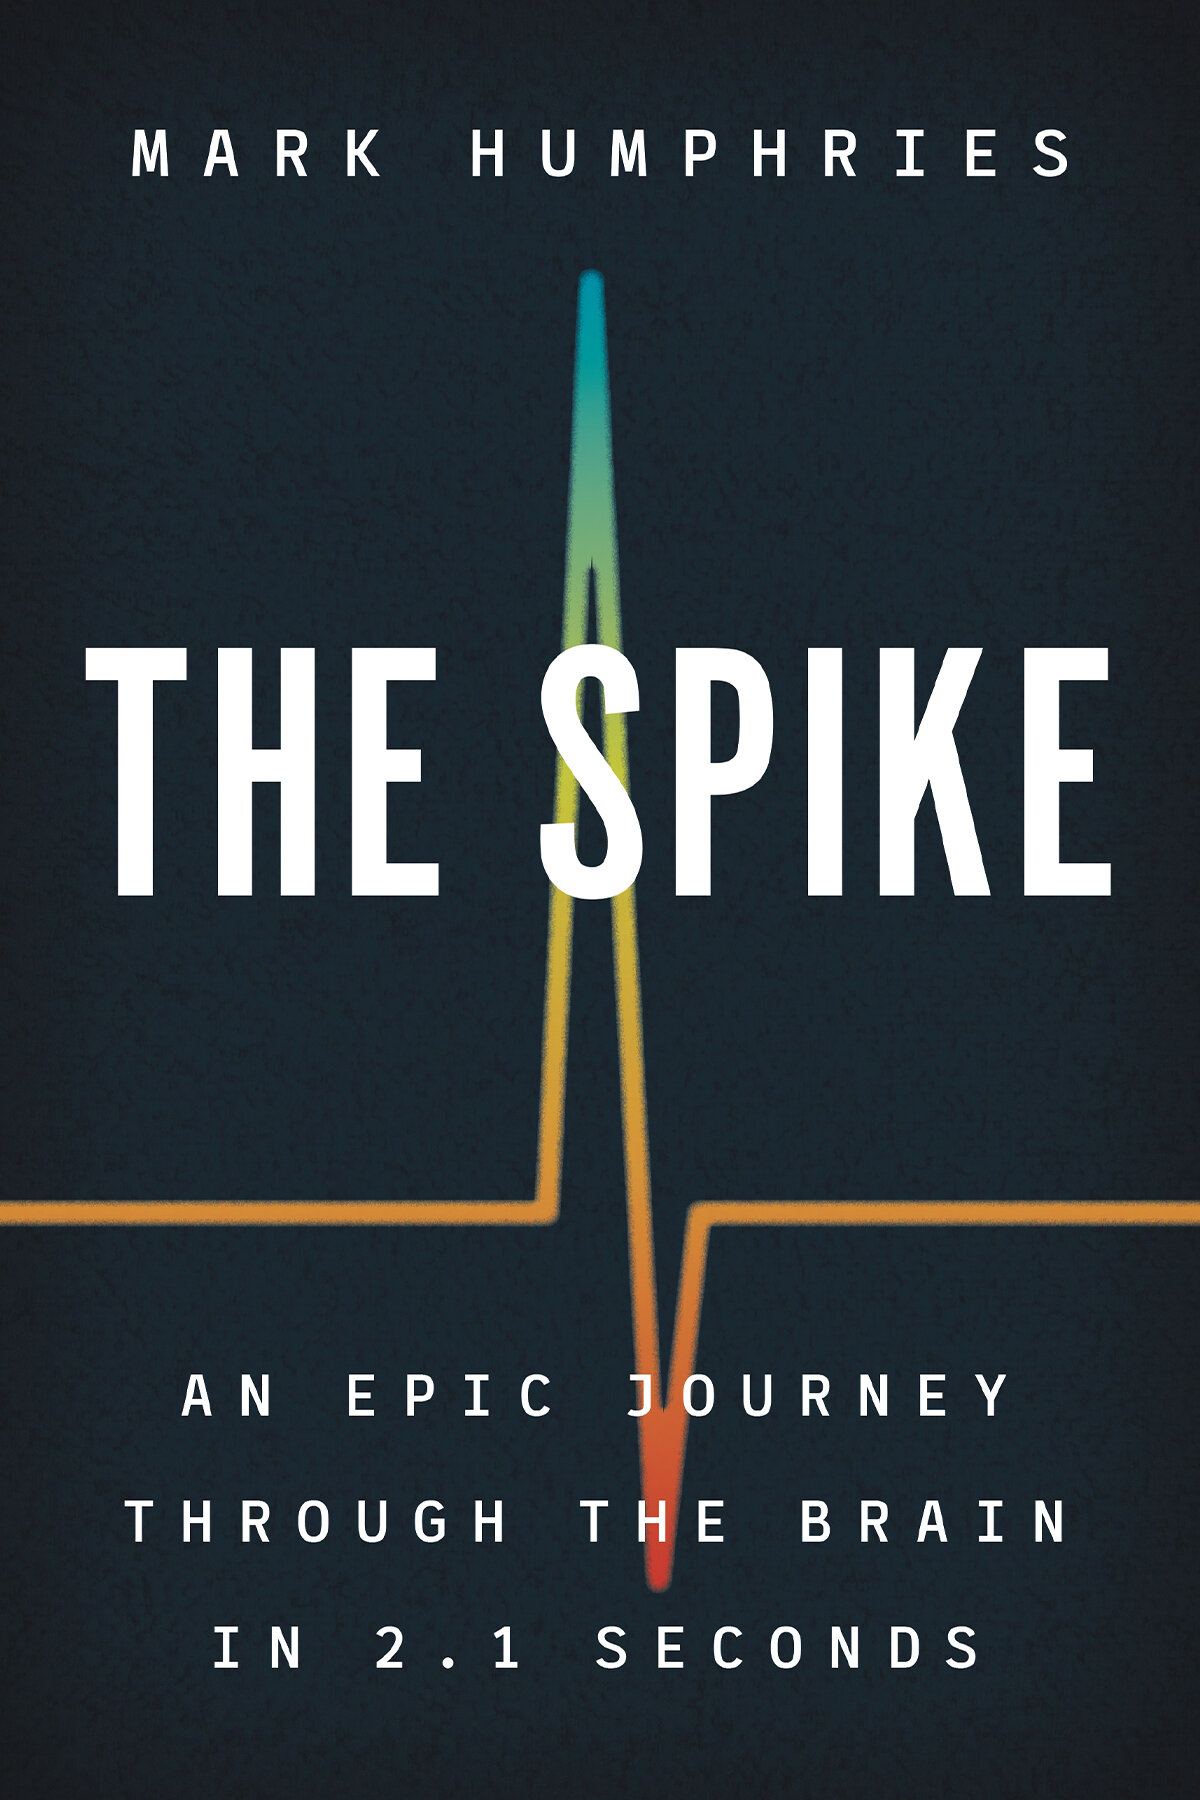 The Spike: An Epic Journey Through the Brain in 2.1 Seconds by Mark Humphries